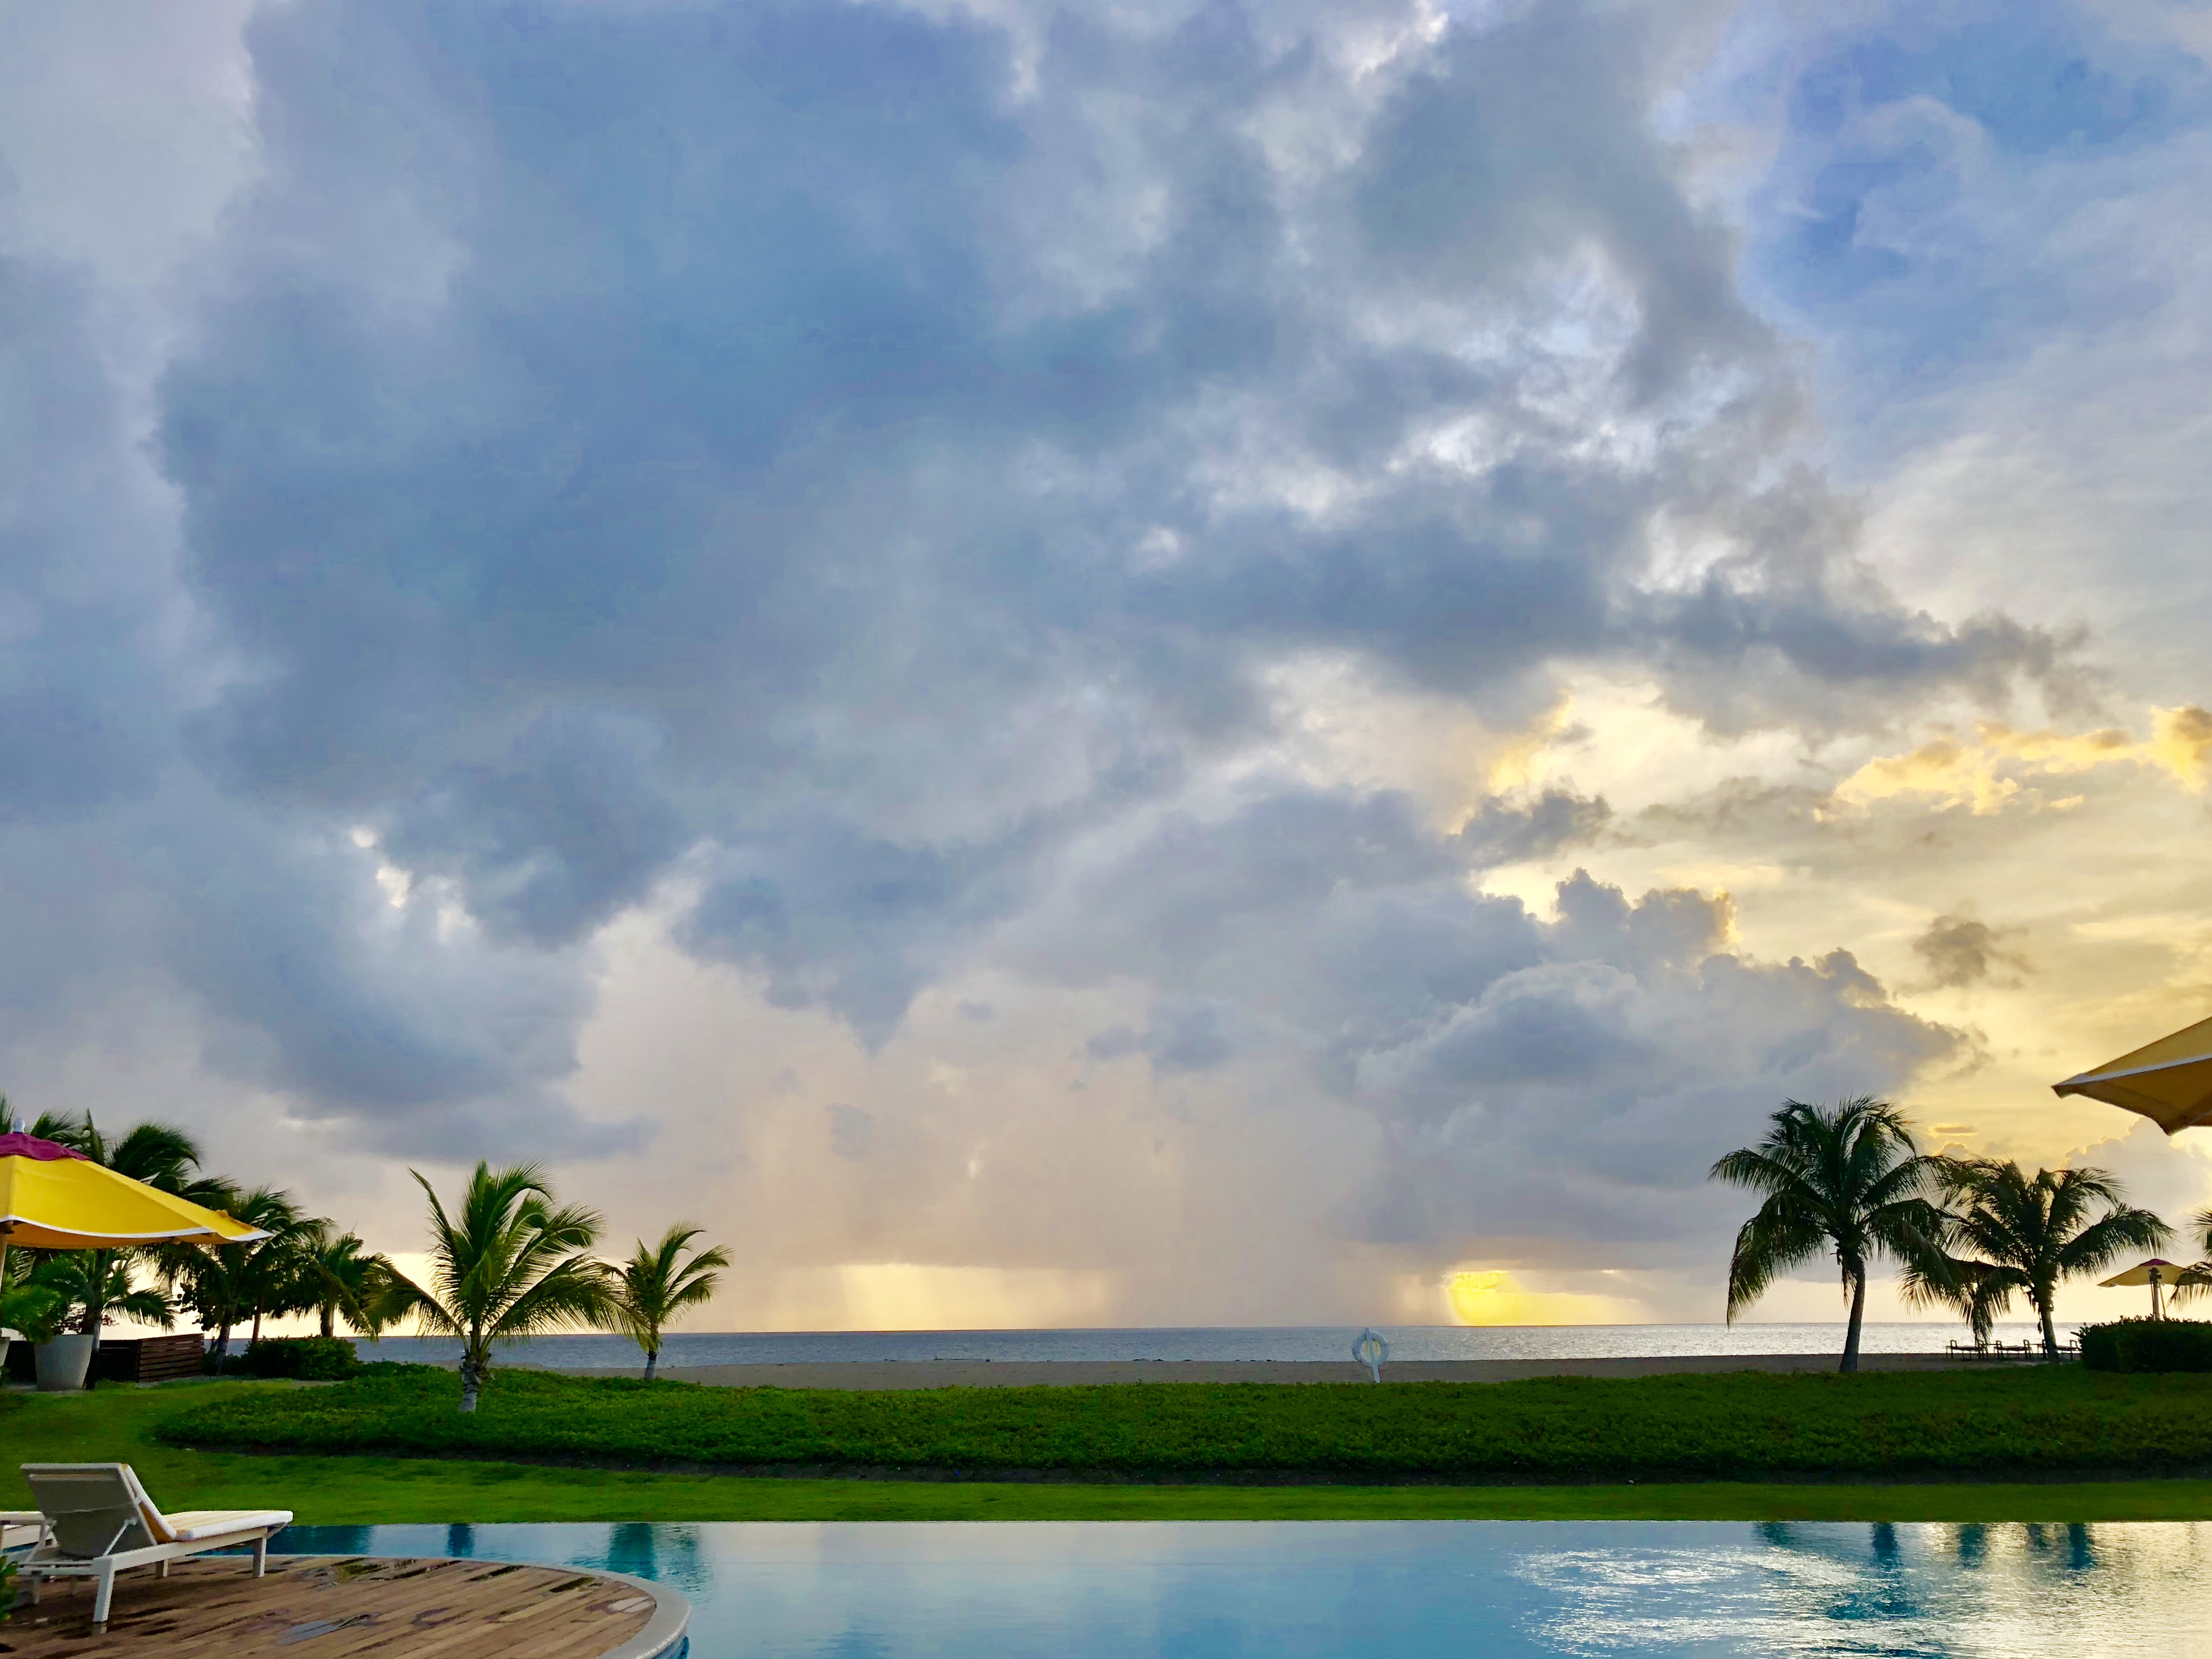 four seasons, four seasons nevis, st. kitts, nevis, caribbean, resort, hotel, ocean, pool, spa, massage, sunset, sky, blue sky